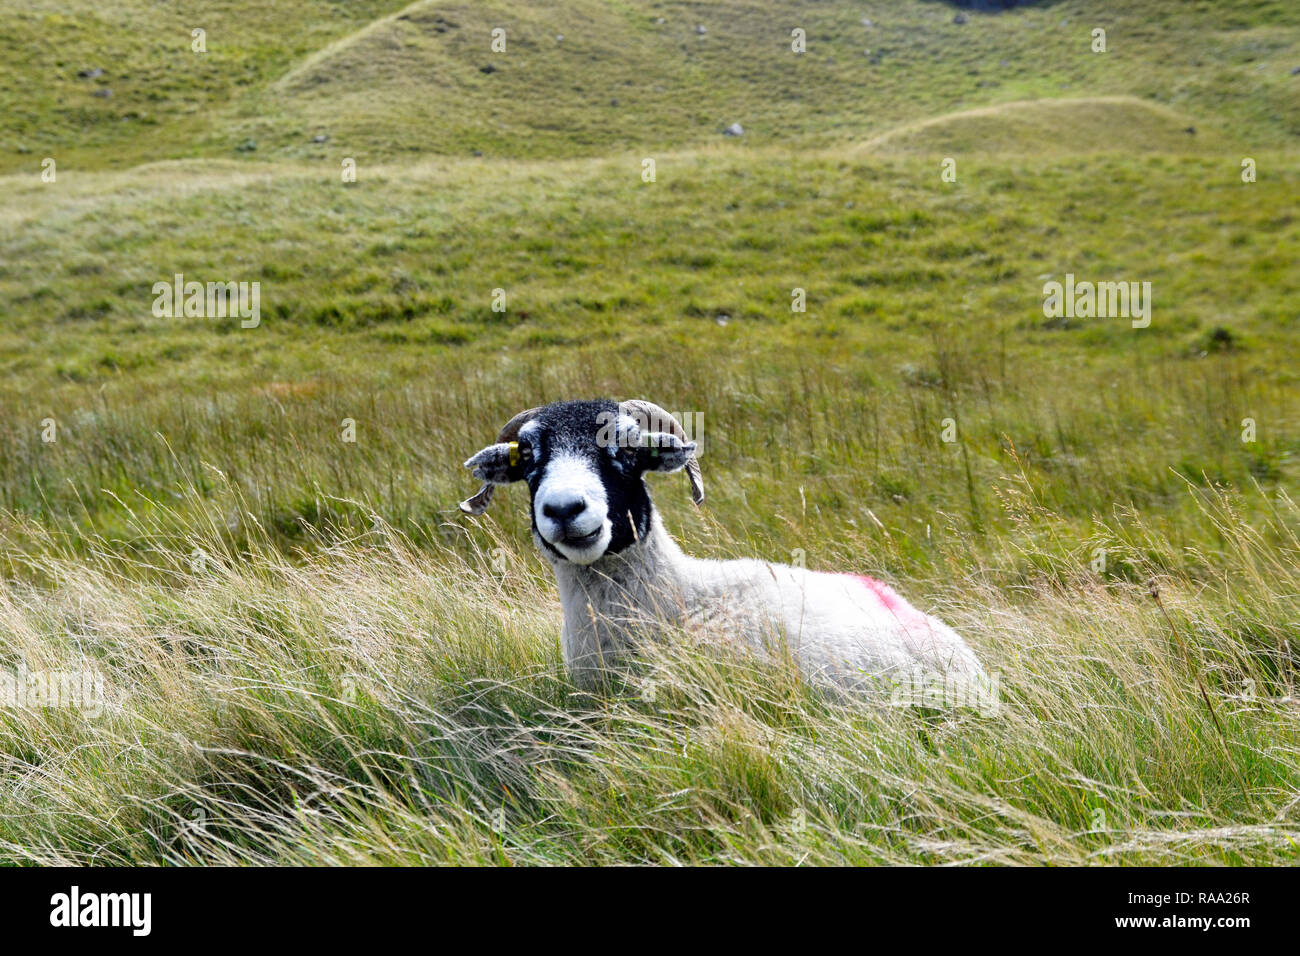 Scottish Blackface. Horned sheep with black face on Honister Pass, Cumbria, Lake District, England - Stock Image